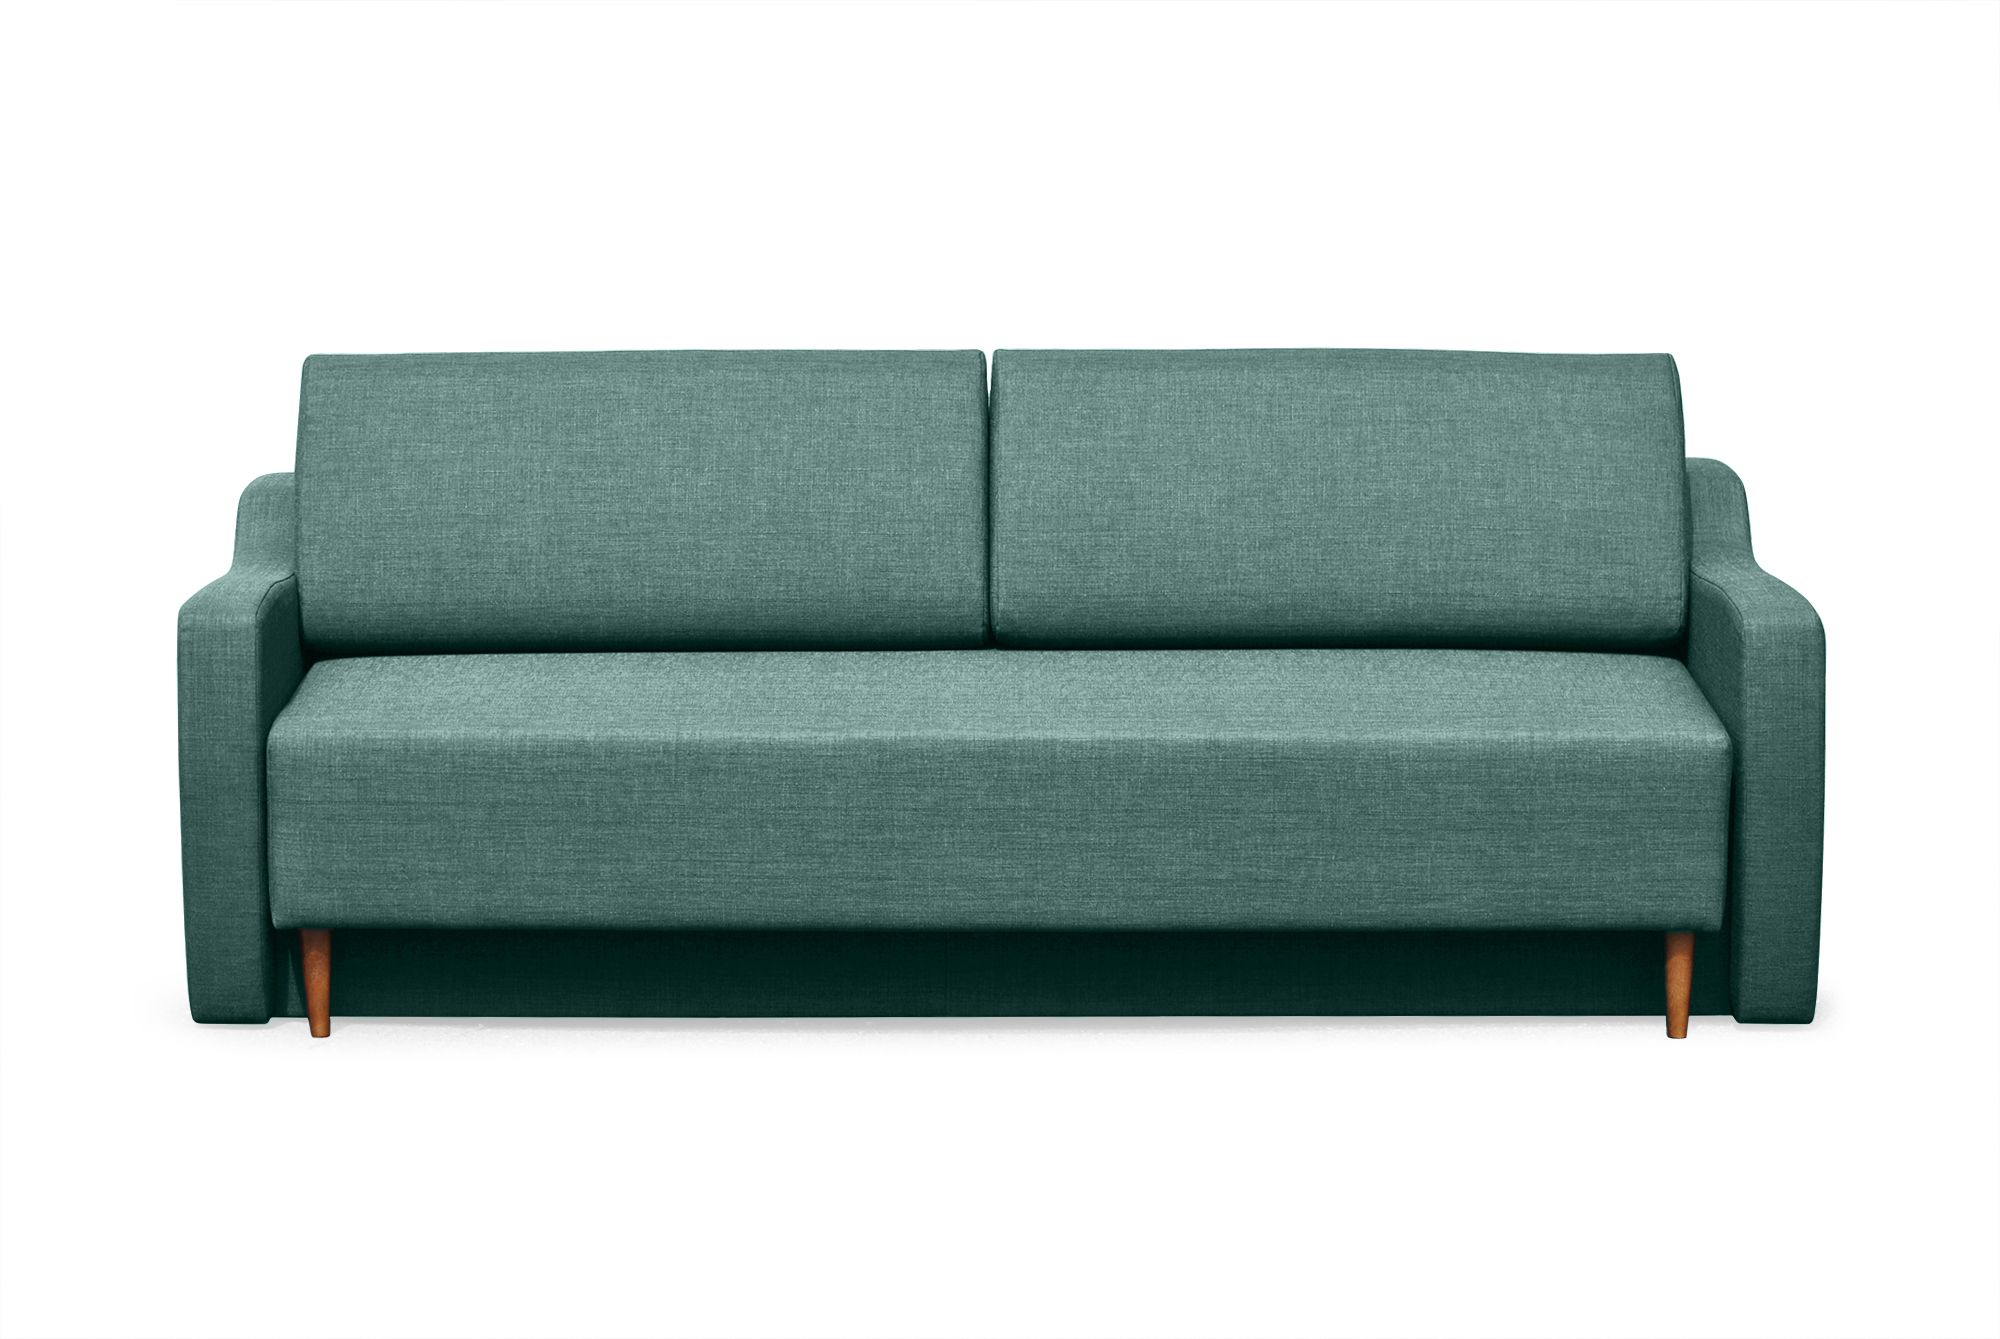 Copenhagen Sofa Bed In Capri Copenhagen Sofa Bed In Capri By